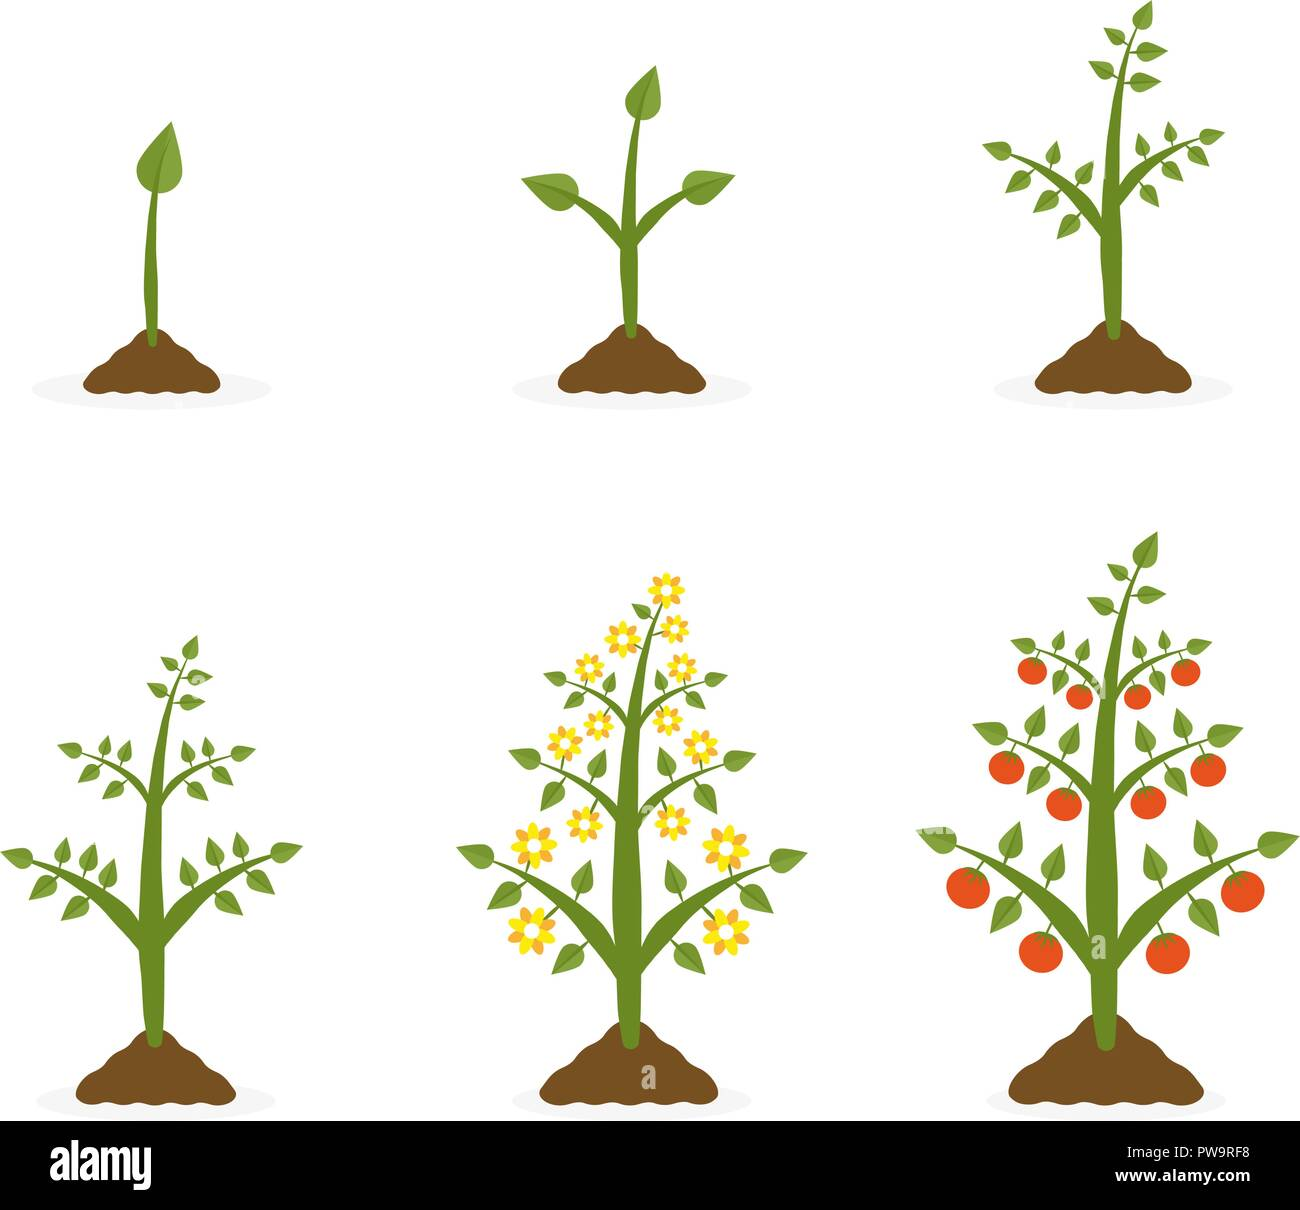 Vector illustration of plant growth stages. Tree with green leaf and red fruit. Planting vegetables concept on white background. - Stock Vector